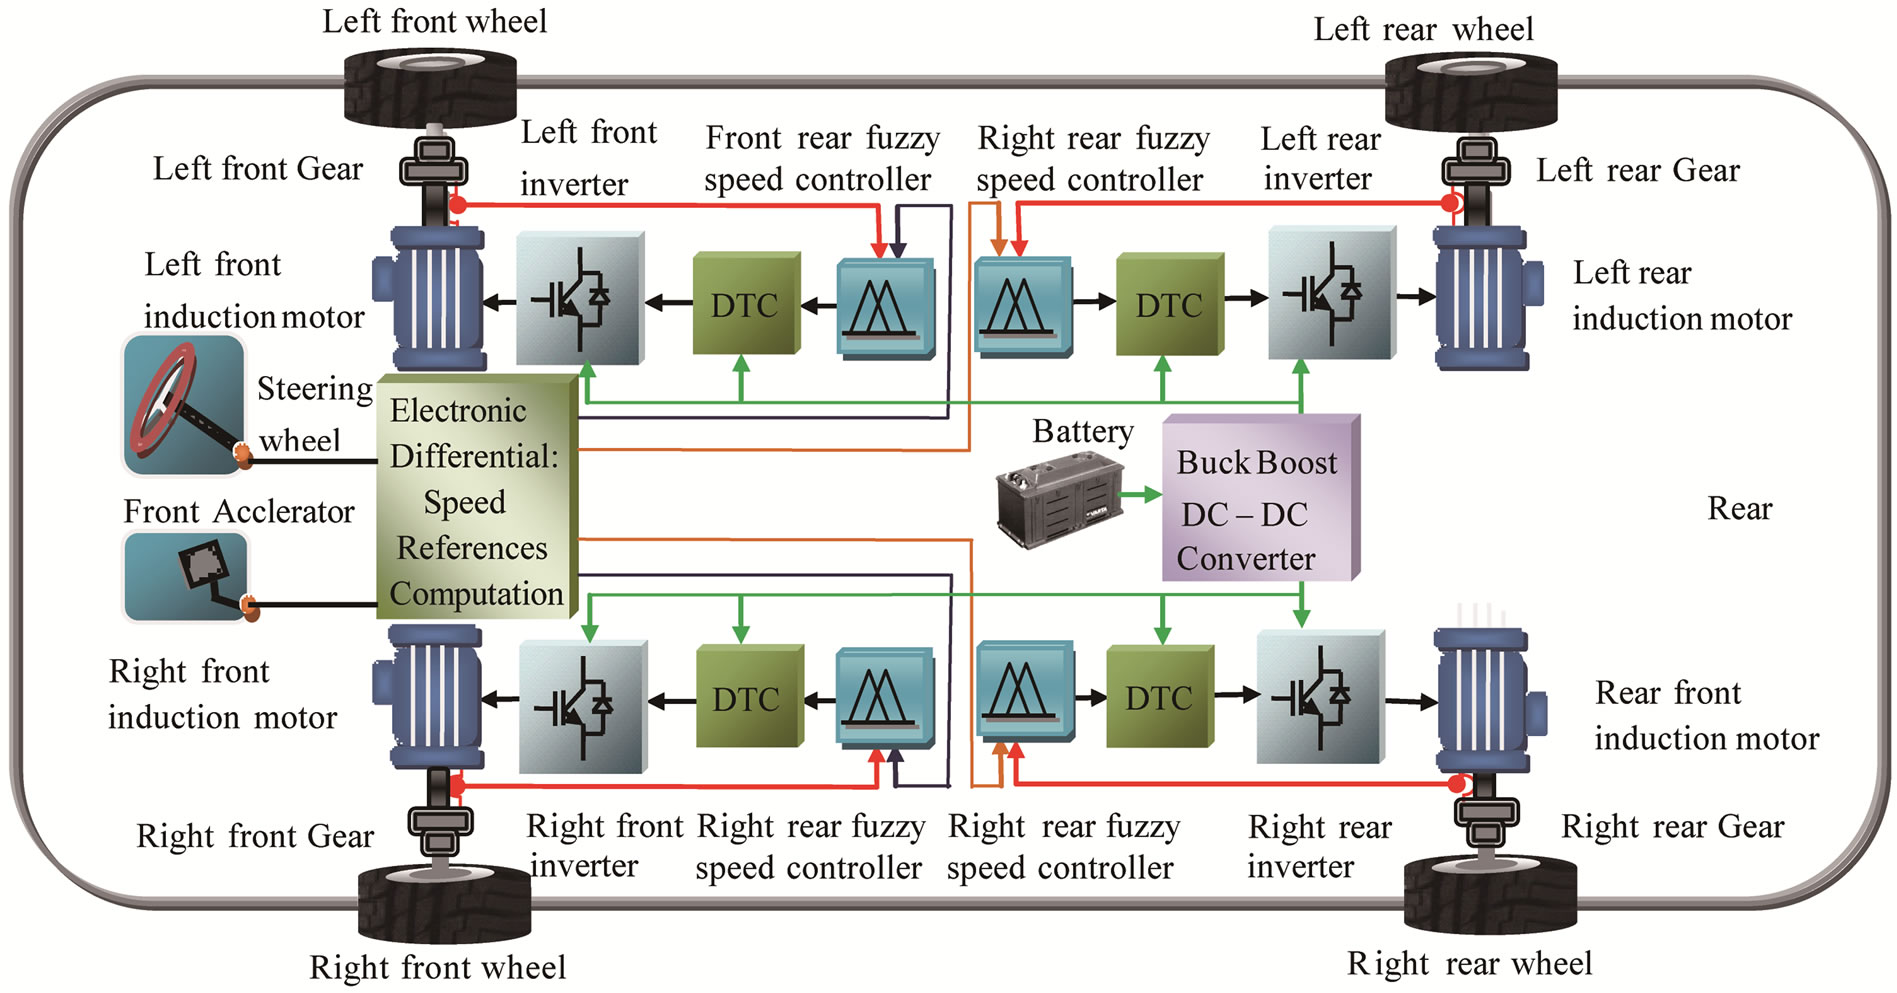 Artificial Intelligence Applications For 4wd Electric Vehicle Complicated Circuit Gives Better Low Speed Control And Higher Torque The Driving Wheels System